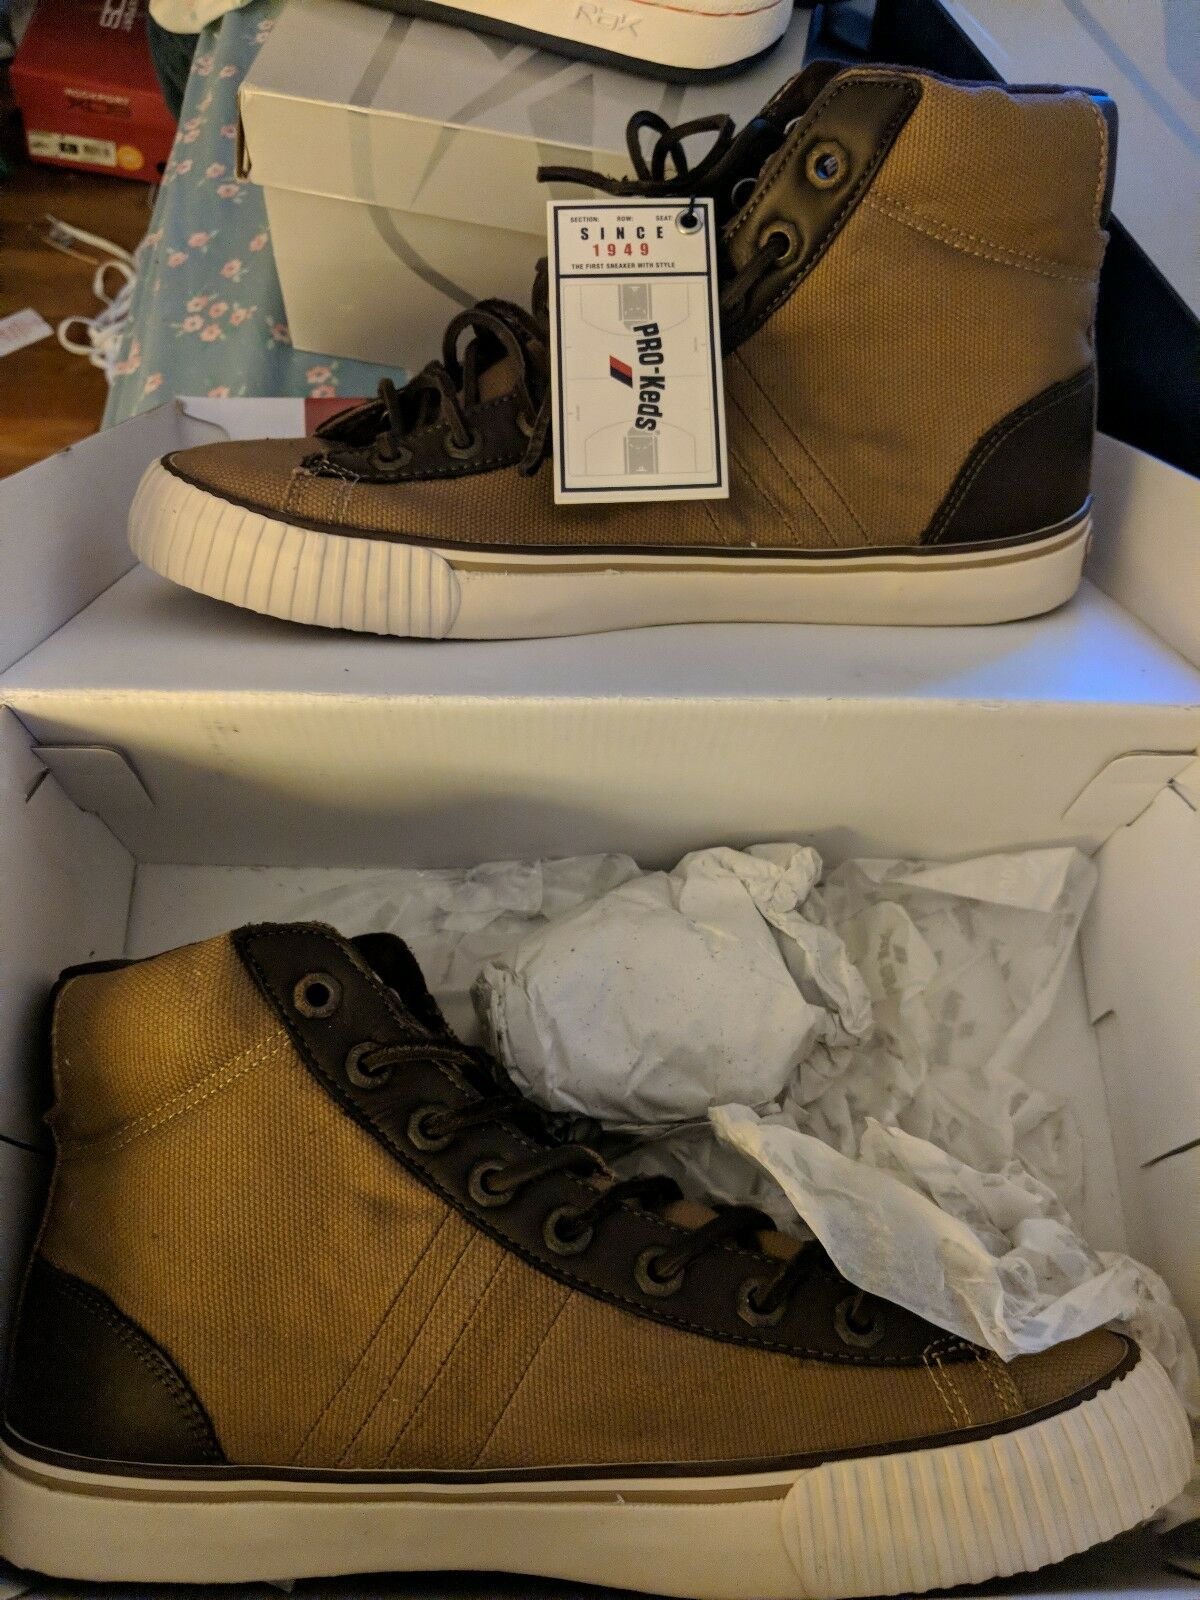 Pro Keds - High Top Sneakers Size 9 1 2 M Brown Canvas and Leather - New